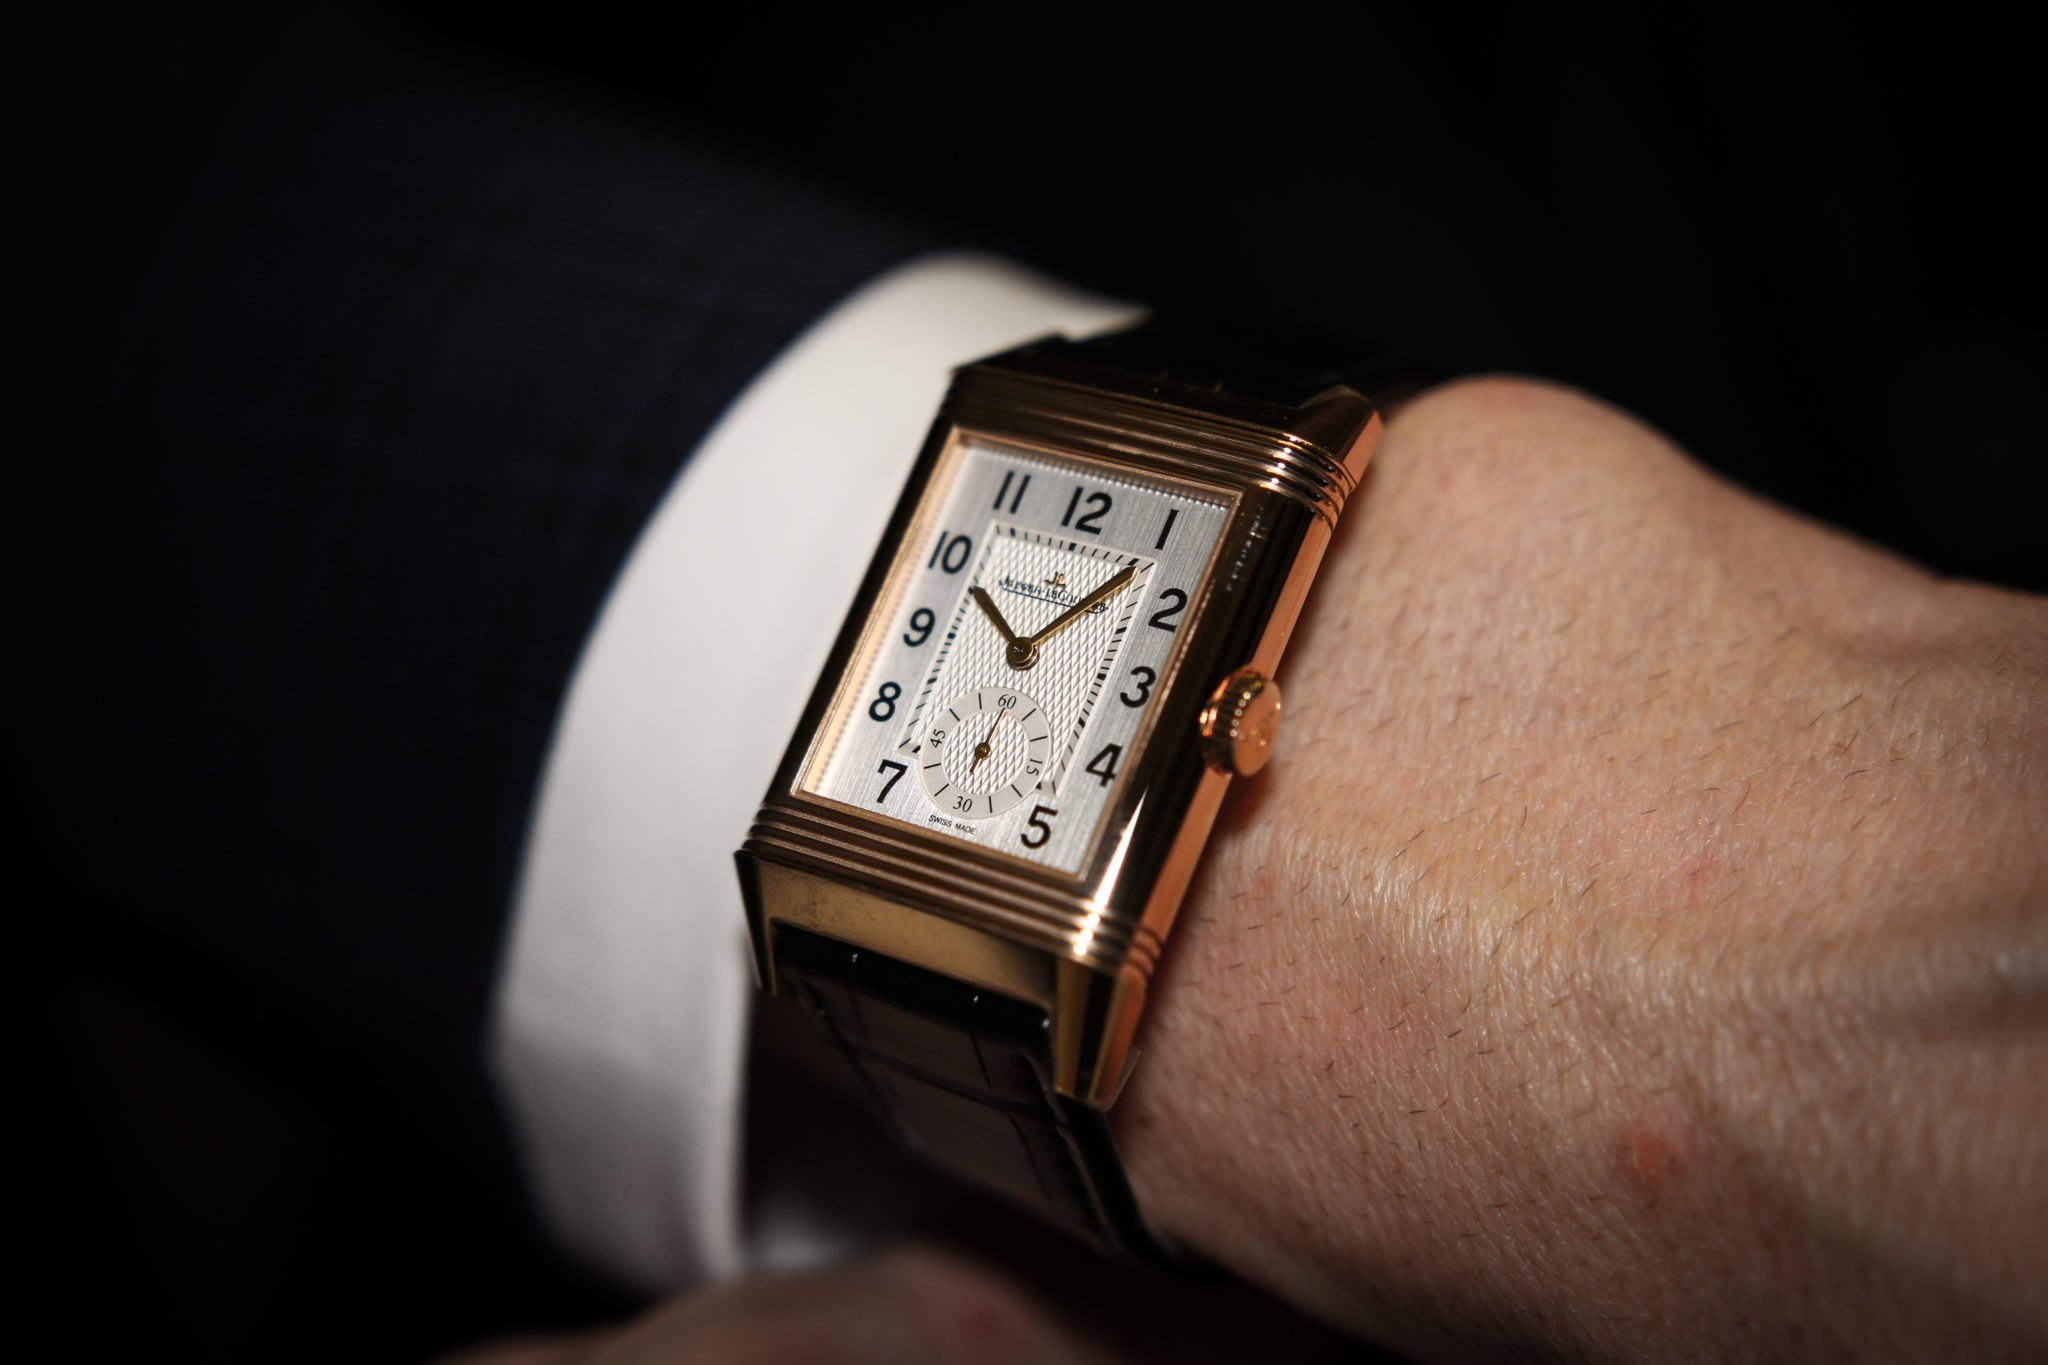 Jaeger LeCoultre – SIHH 2019